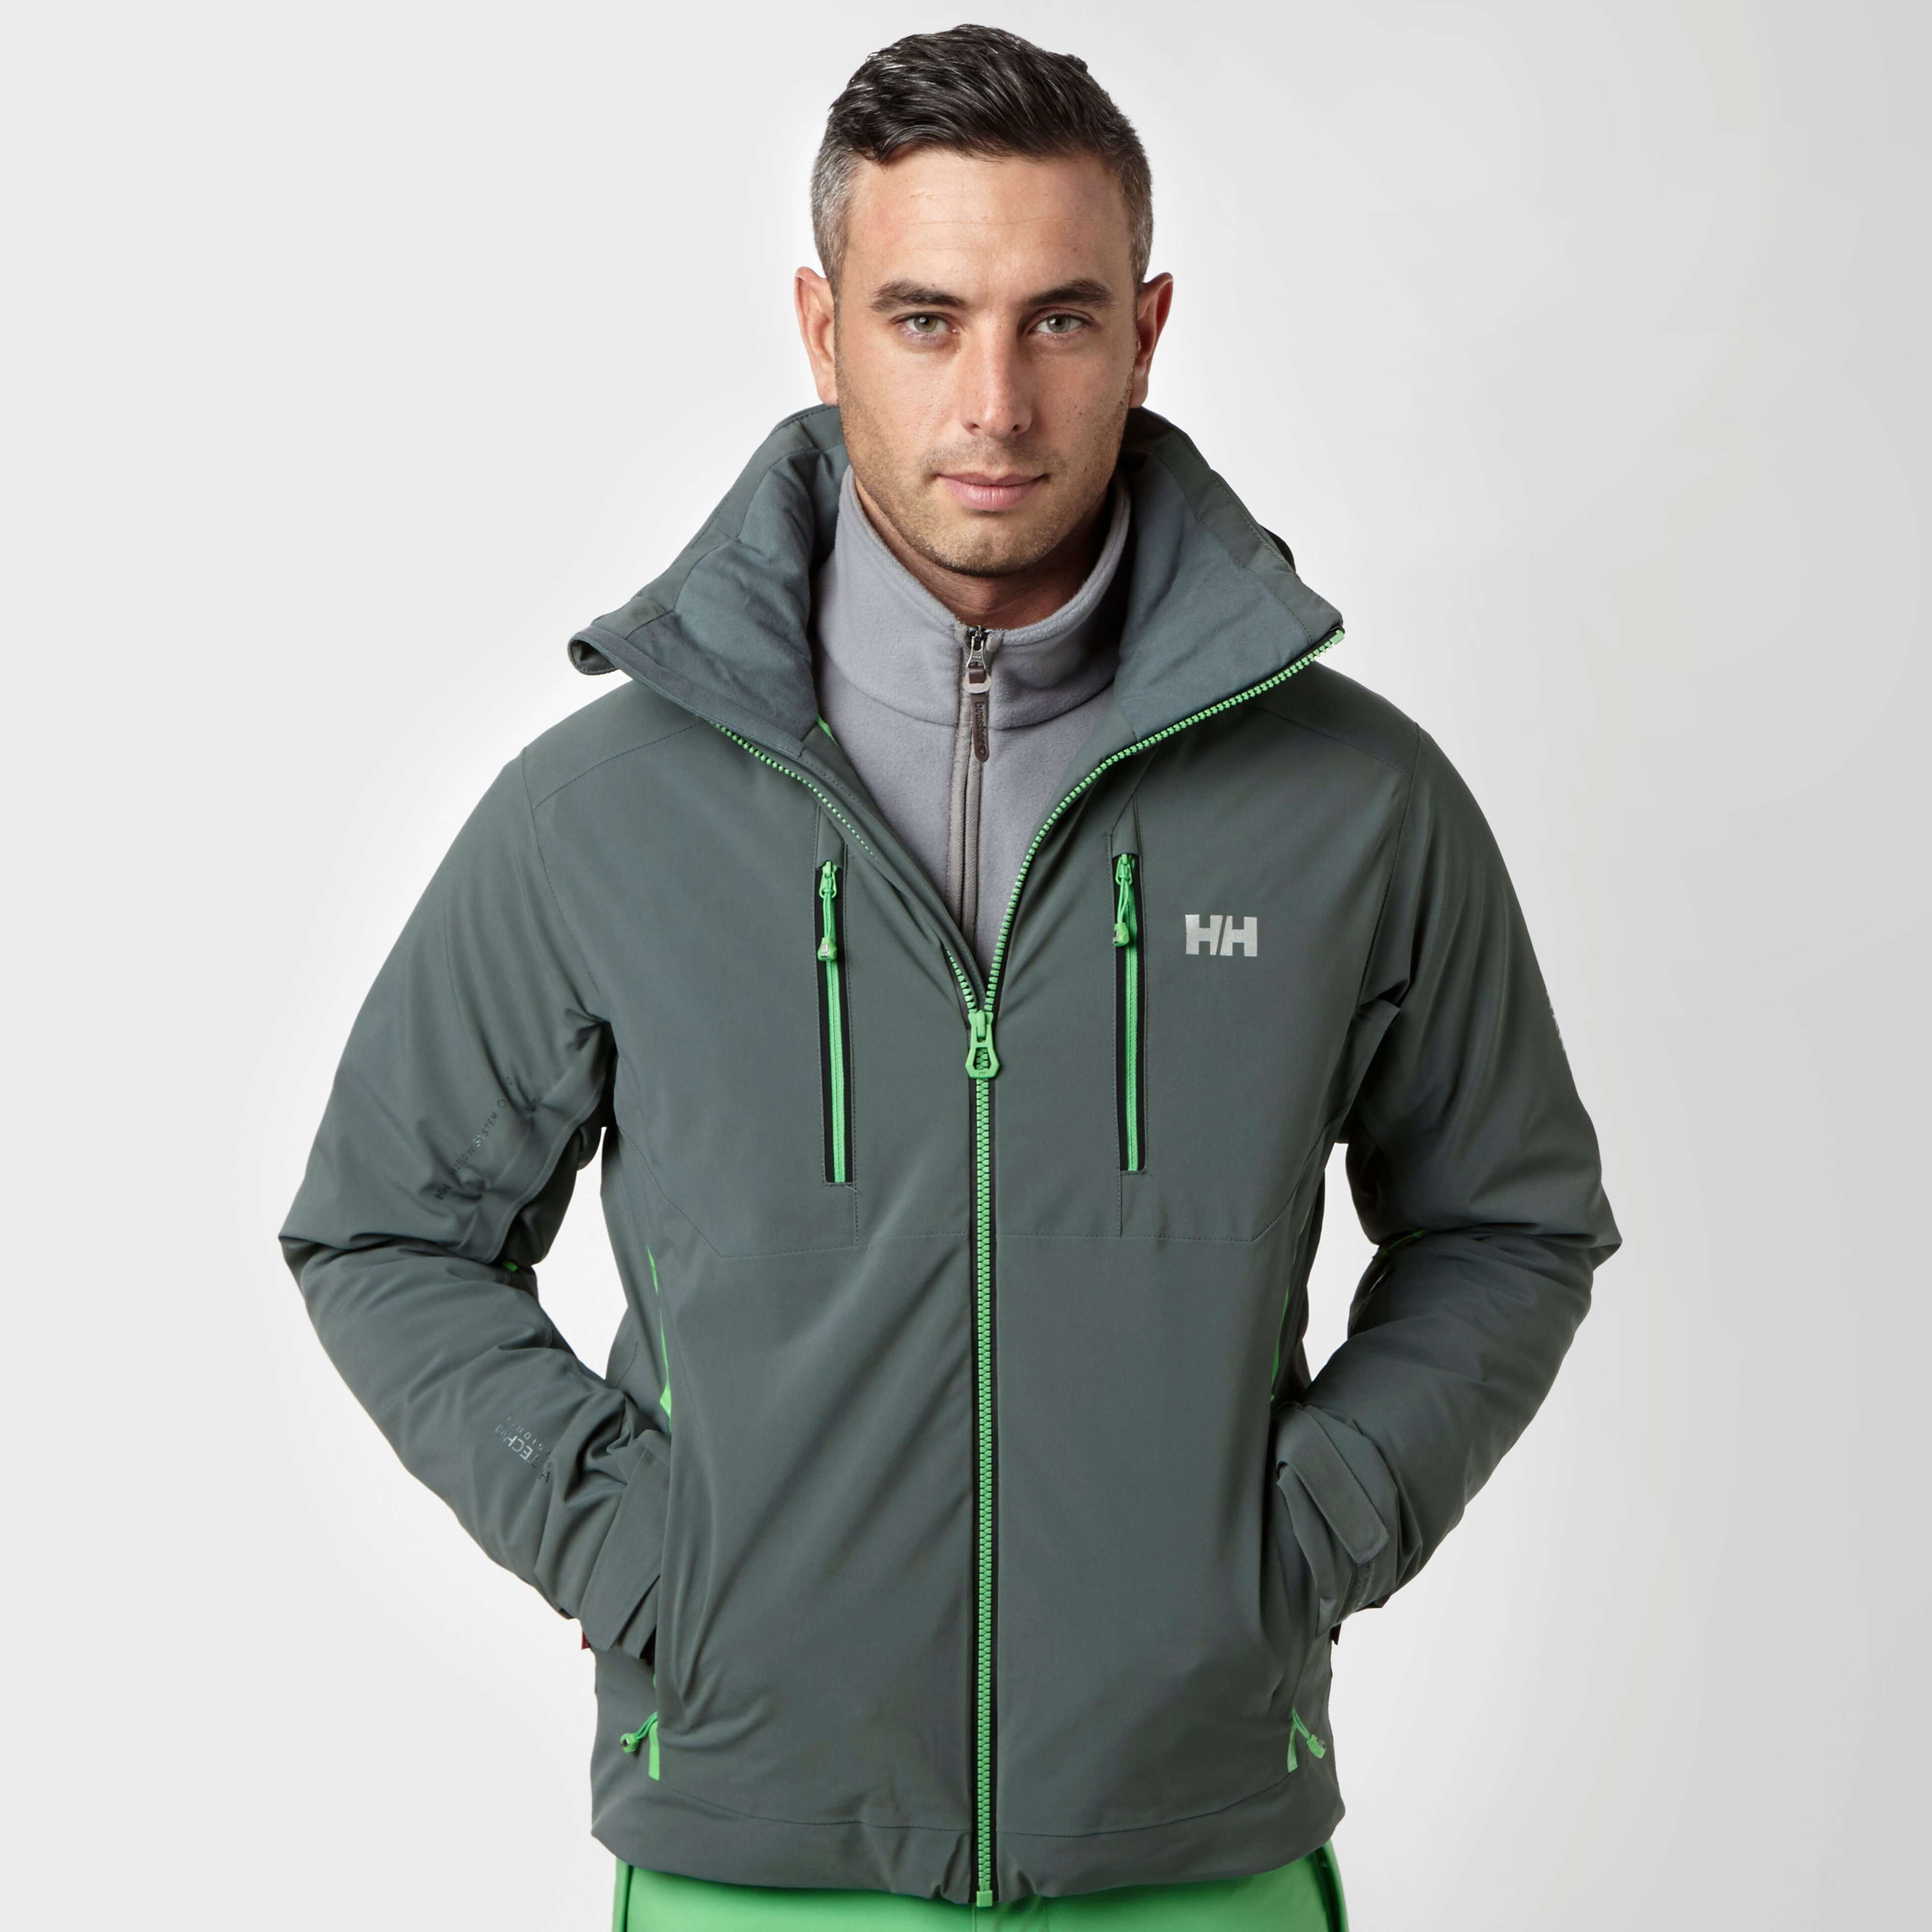 HELLY HANSEN Men's Alpha 2.0 Ski Jacket